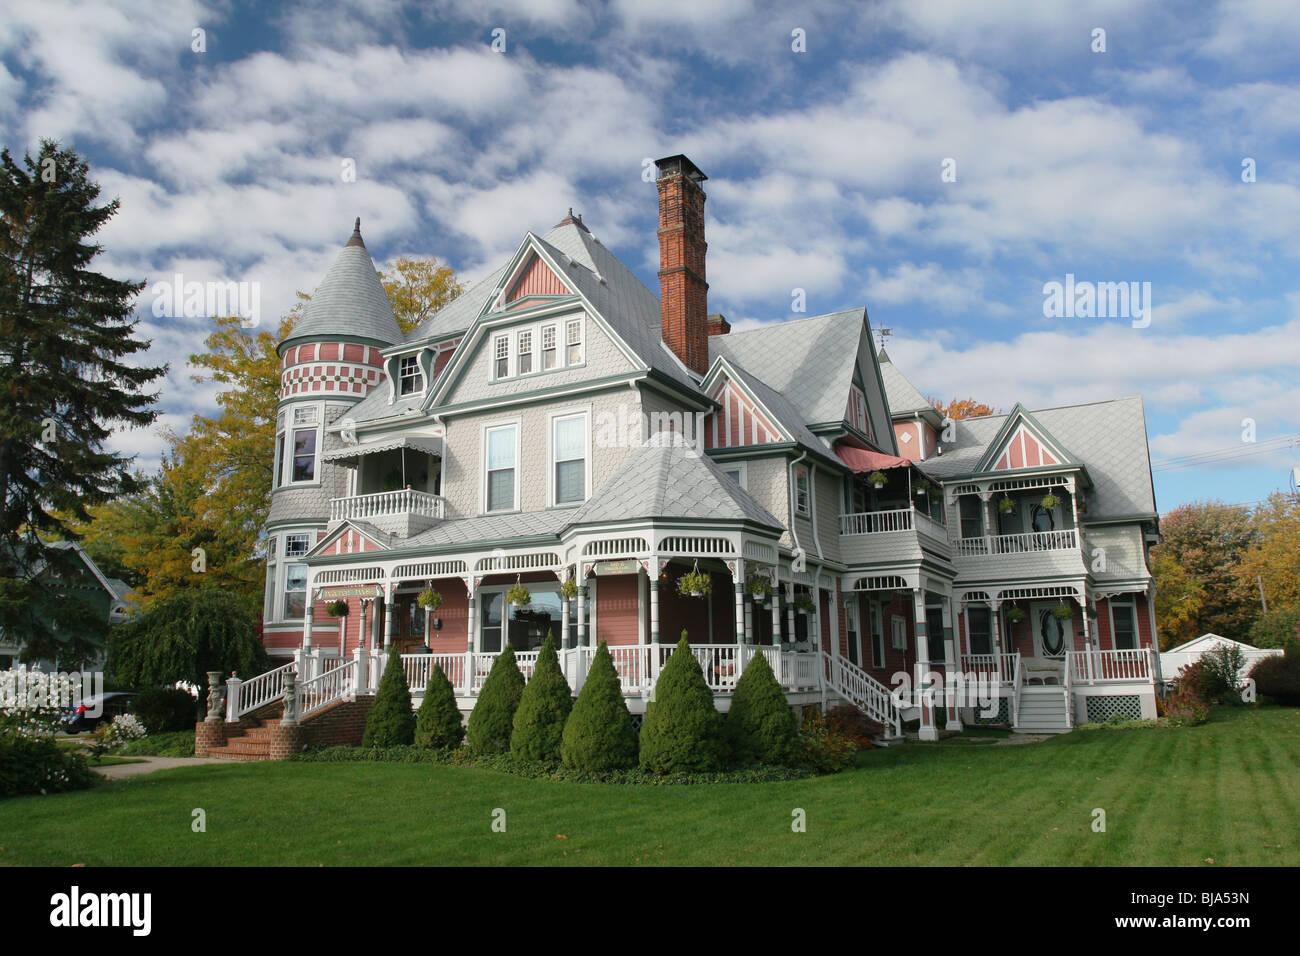 The Heather House. Victorian house in Marine City, Michigan, USA. Possibly available as a Bed and Breakfast site. - Stock Image